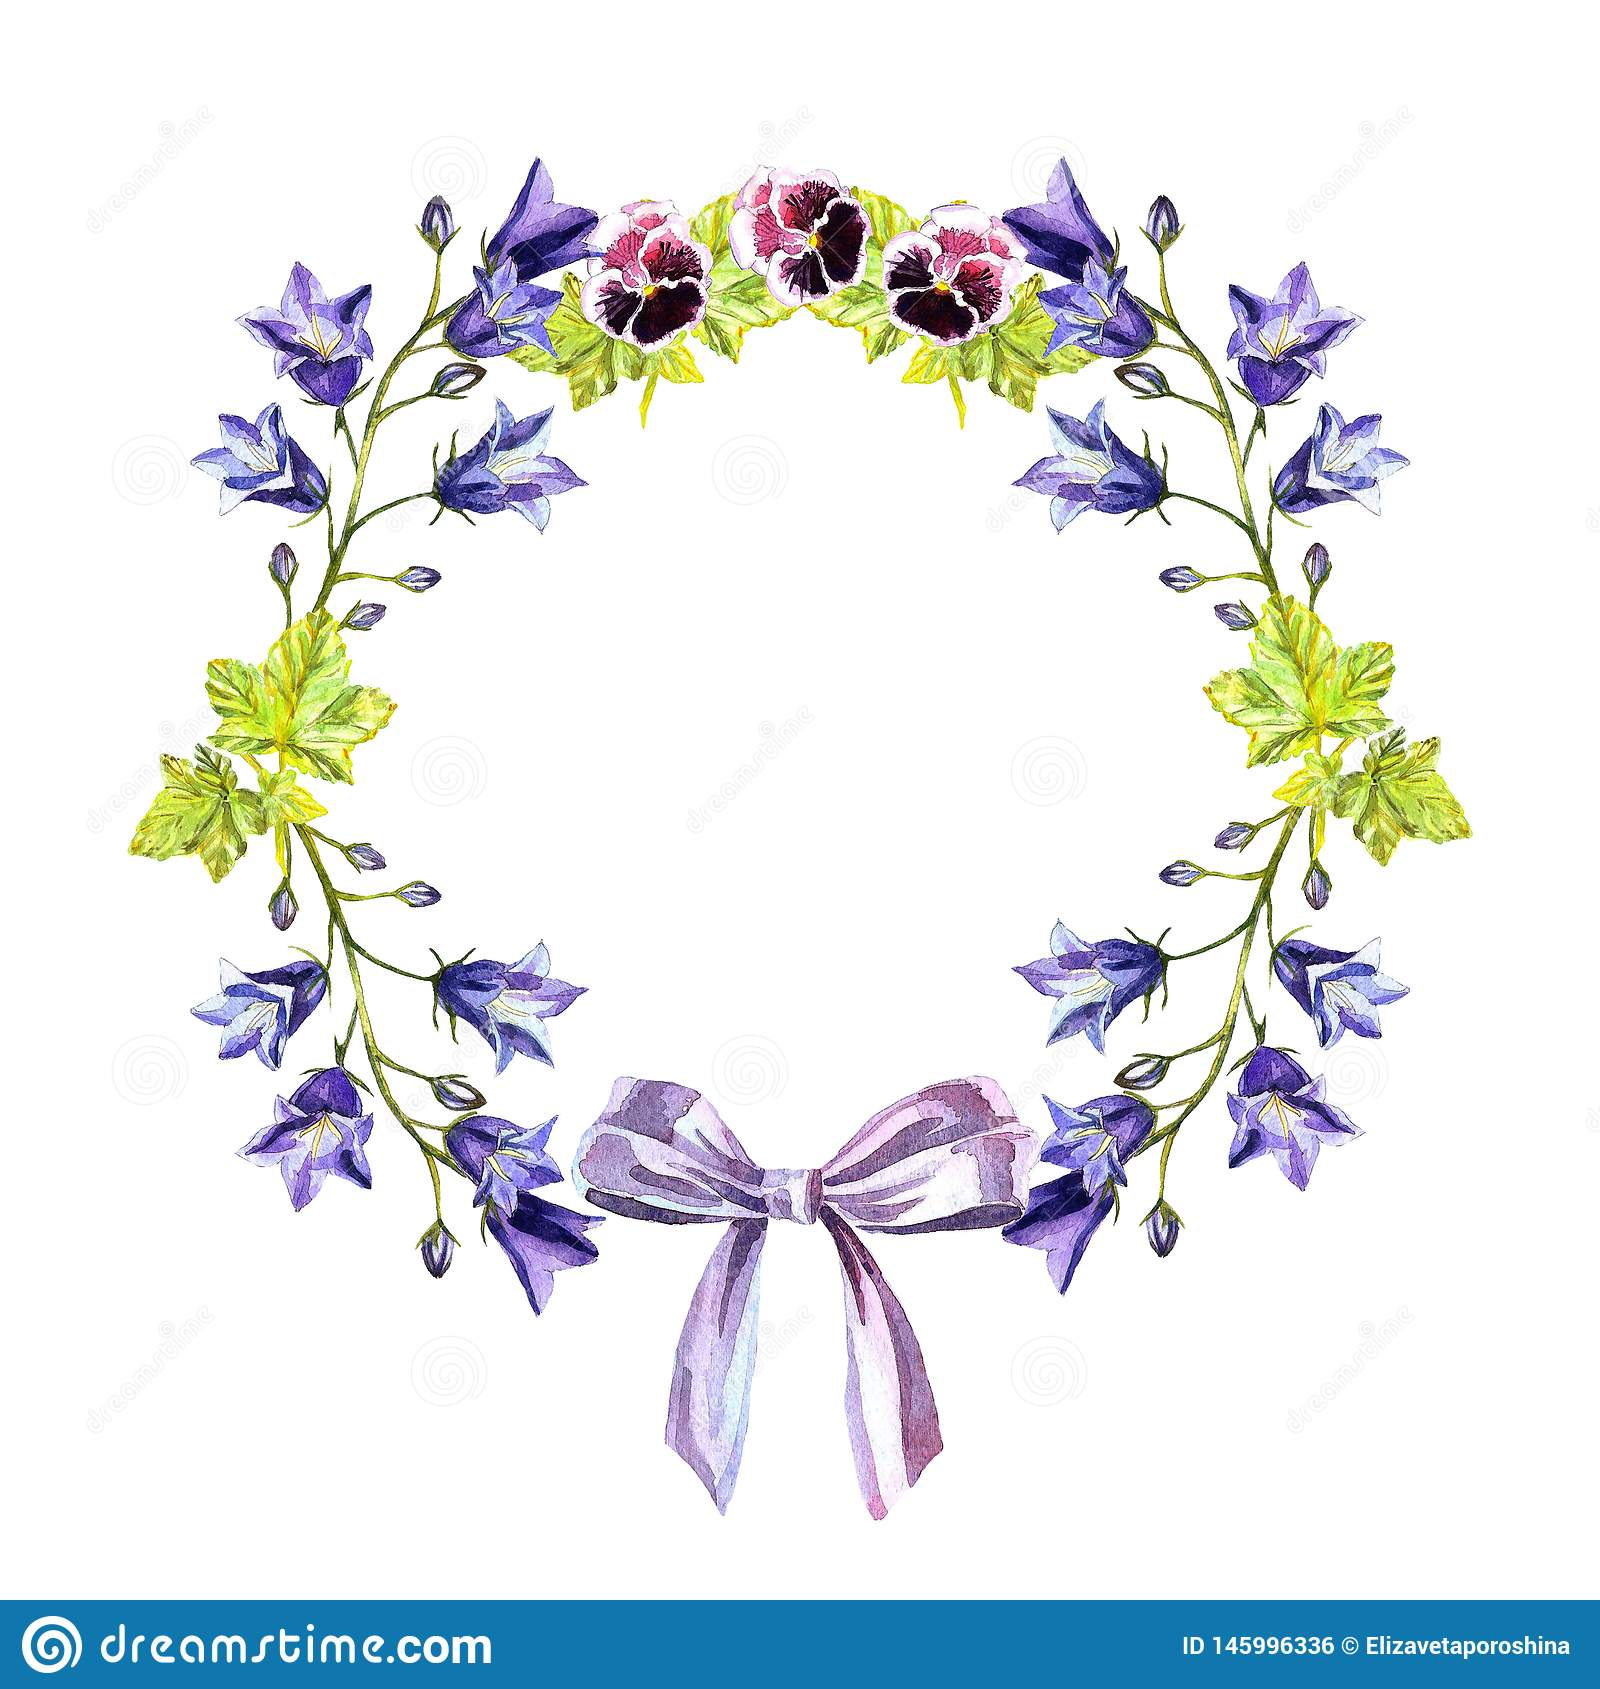 Watercolour circle frame of bluebells, leaves, purple violets and bow of light-purple ribbon